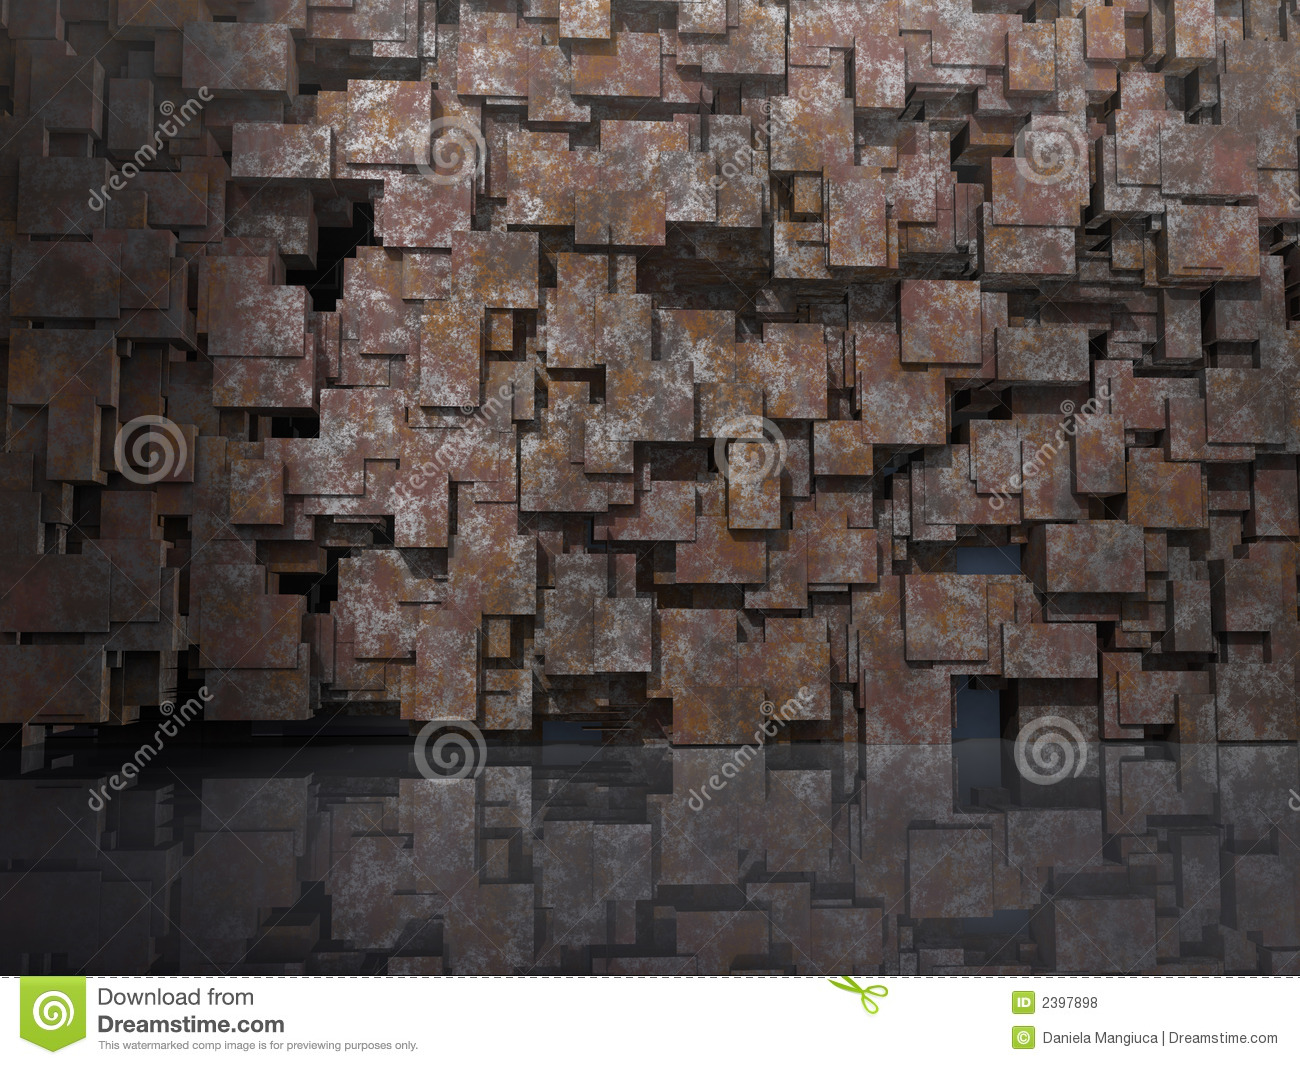 3D Model Background Royalty Free Stock Photos - Image: 2397898